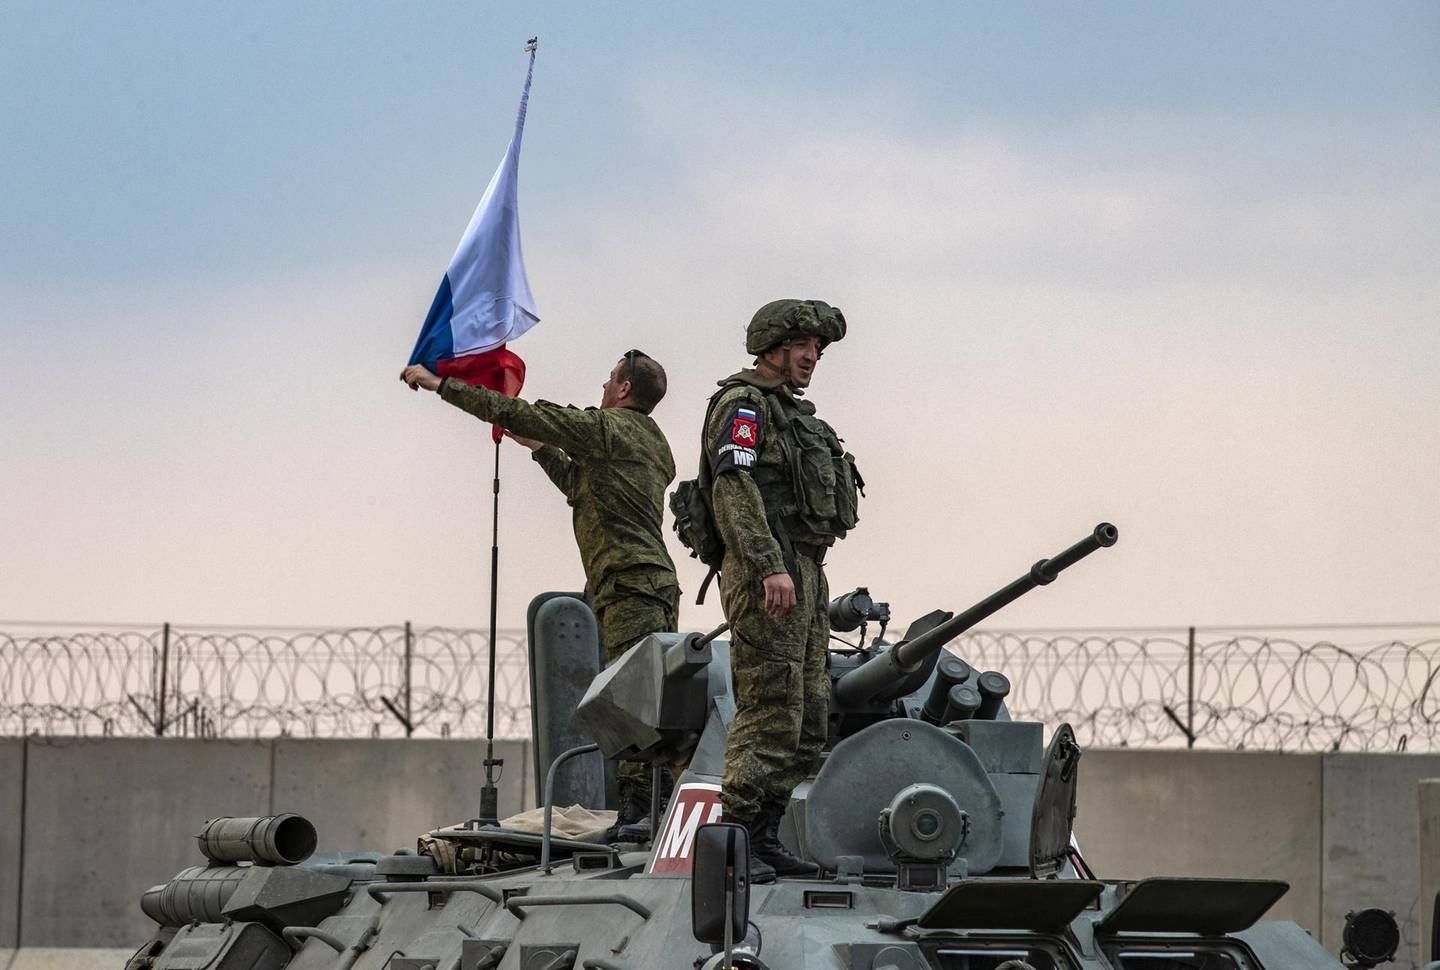 Russian troops on patrol with Turkish forces in the countryside of the town of Darbasiyah in Syria's northeastern Hasakeh province on the border with Turkey, raise a national flag atop an armoured personnel carrier on November 1, 2019. - Turkey started joint patrols with Russia in northern Syria today to verify whether Kurdish forces have withdrawn from a key border zone in compliance with a deal reached between the two governments. (Photo by Delil SOULEIMAN / AFP)